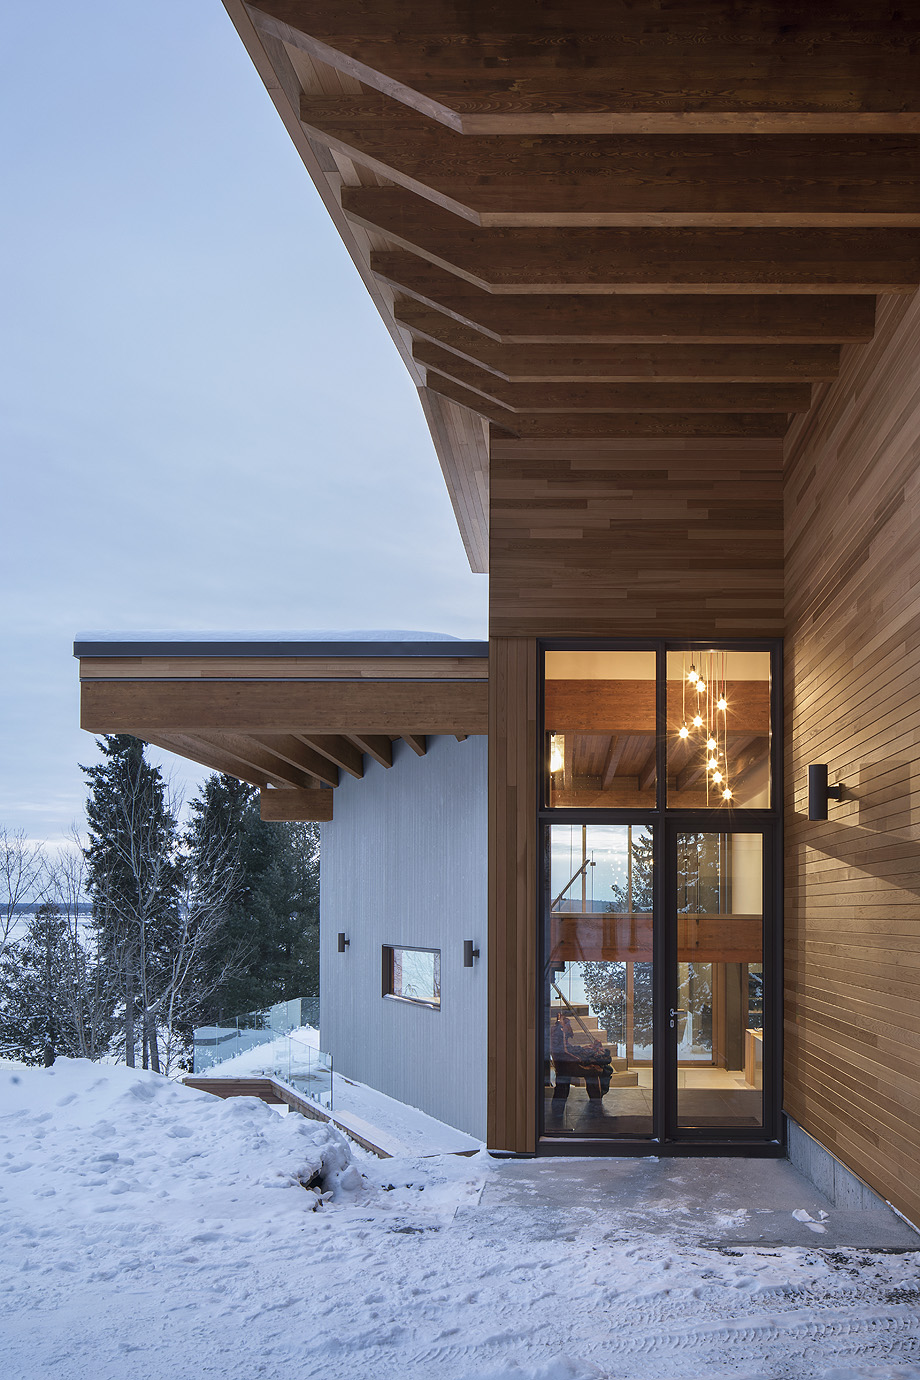 casa accostee de bourgeois lechasseur architects - foto adrien williams (15)